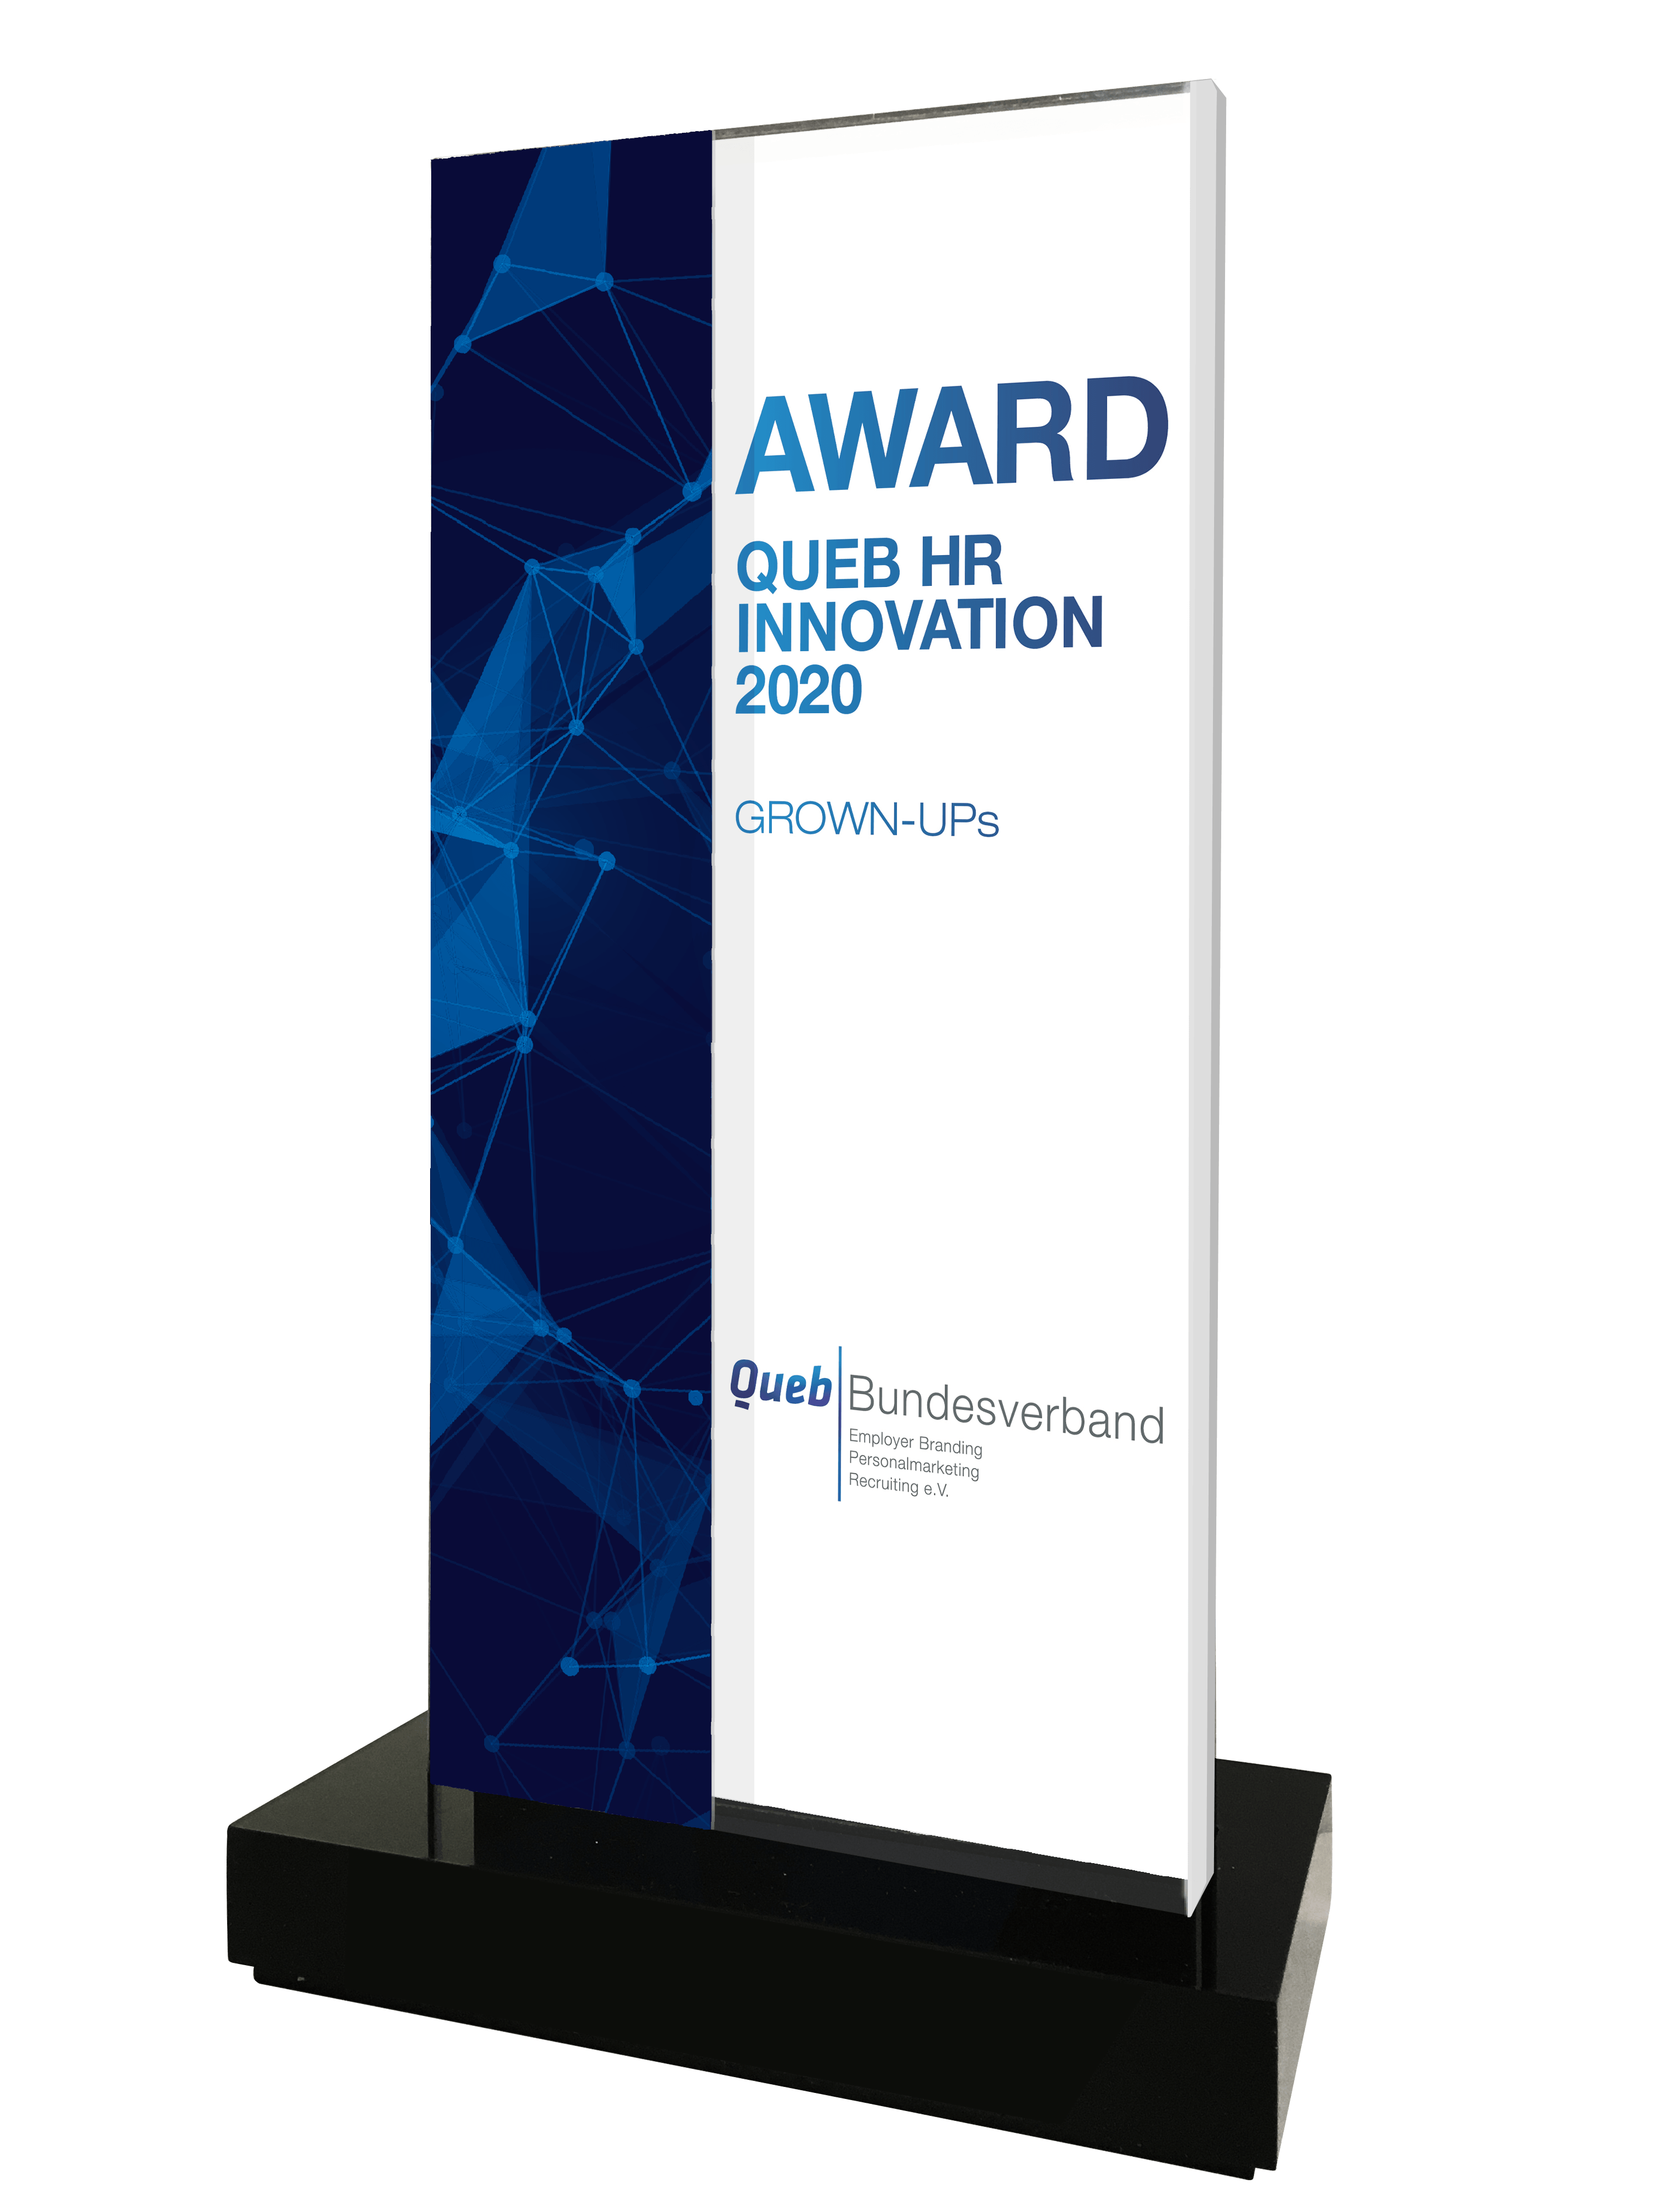 Queb HR Innovation Awards: Grown-UPs